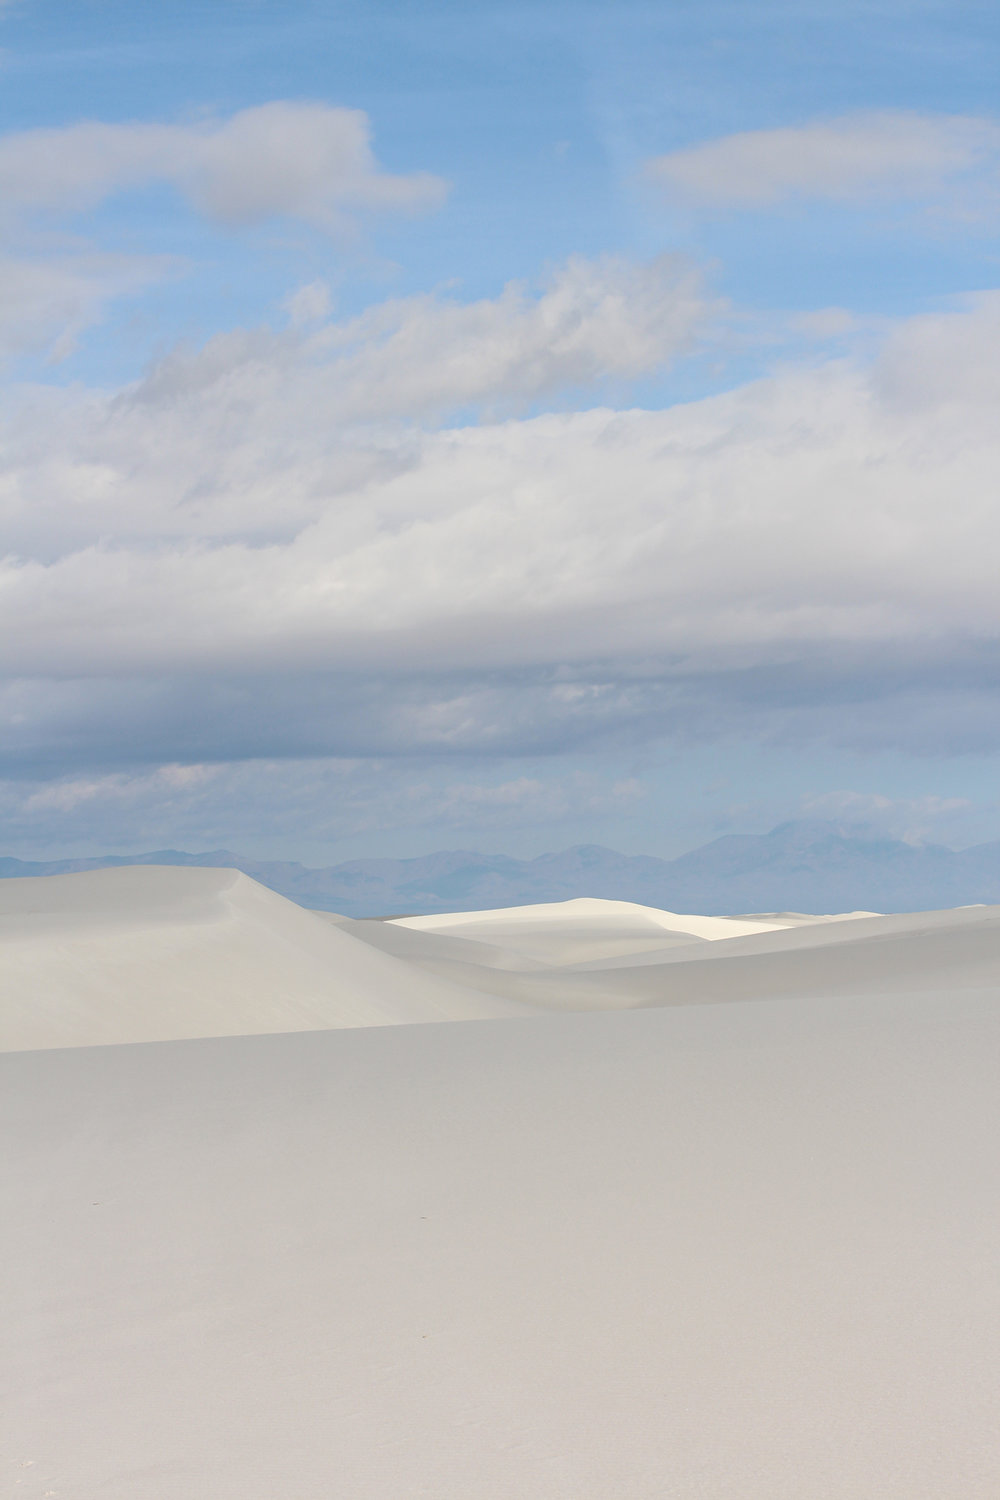 February: White Sands National Park